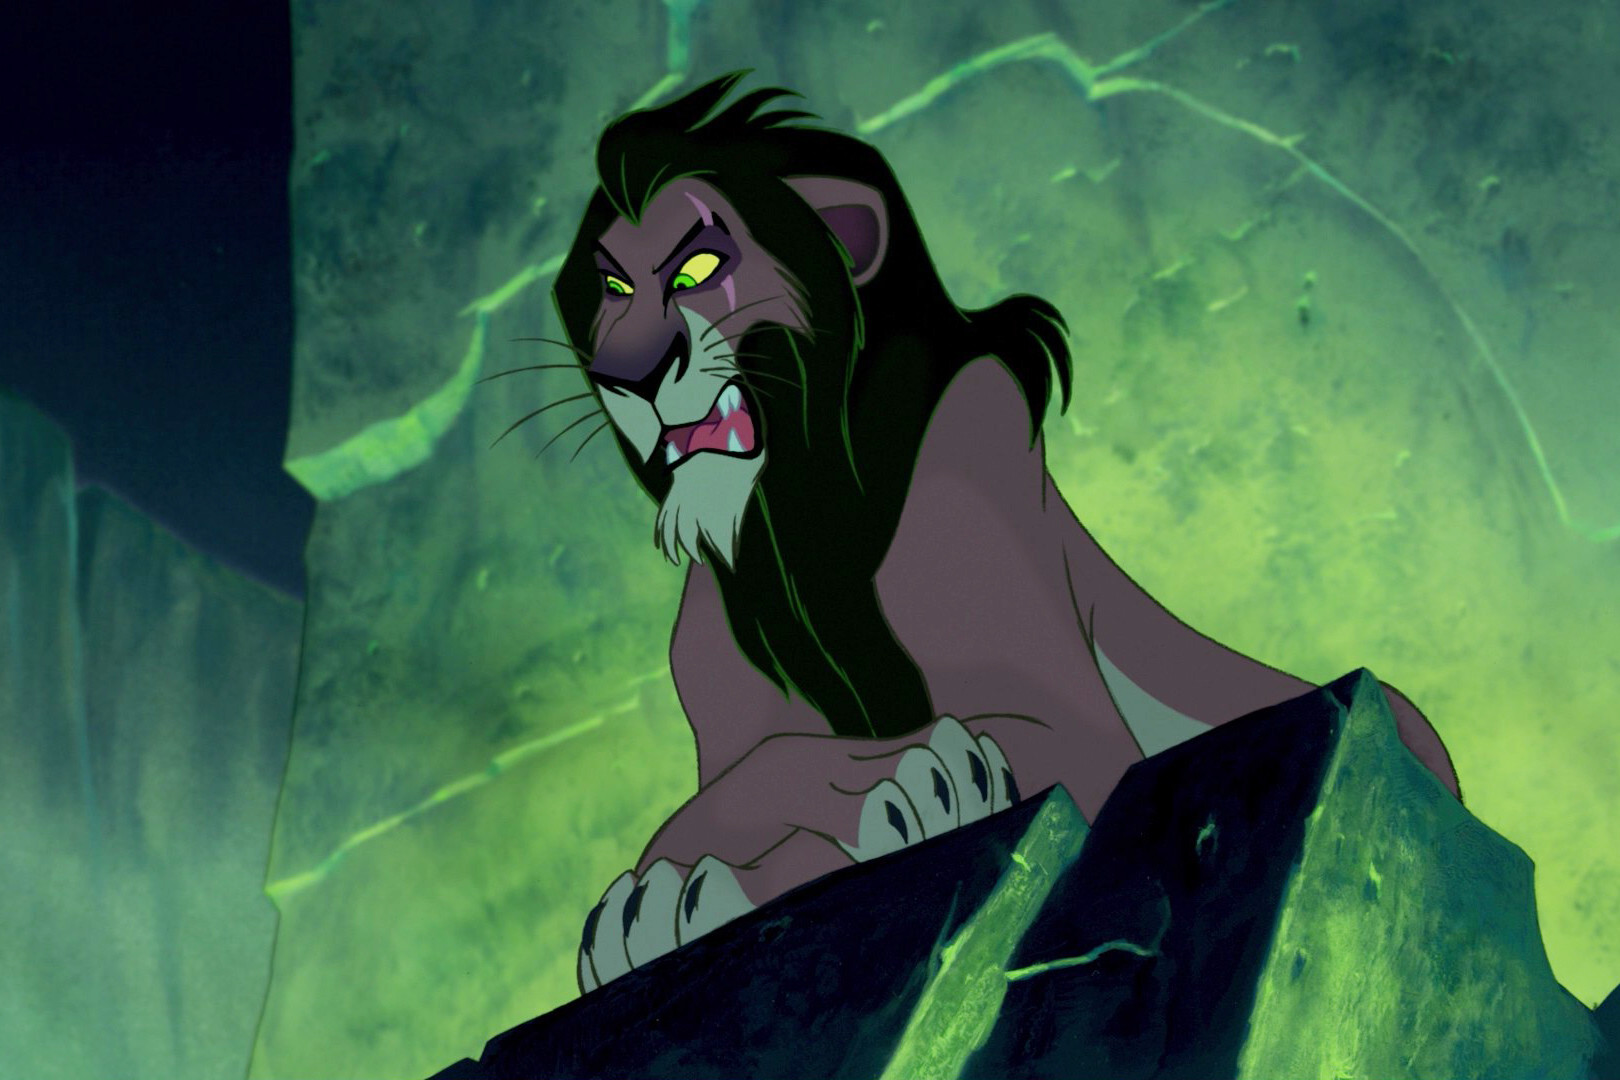 Lion King Remake Looking At This Actor To Voice Scar, Apparently